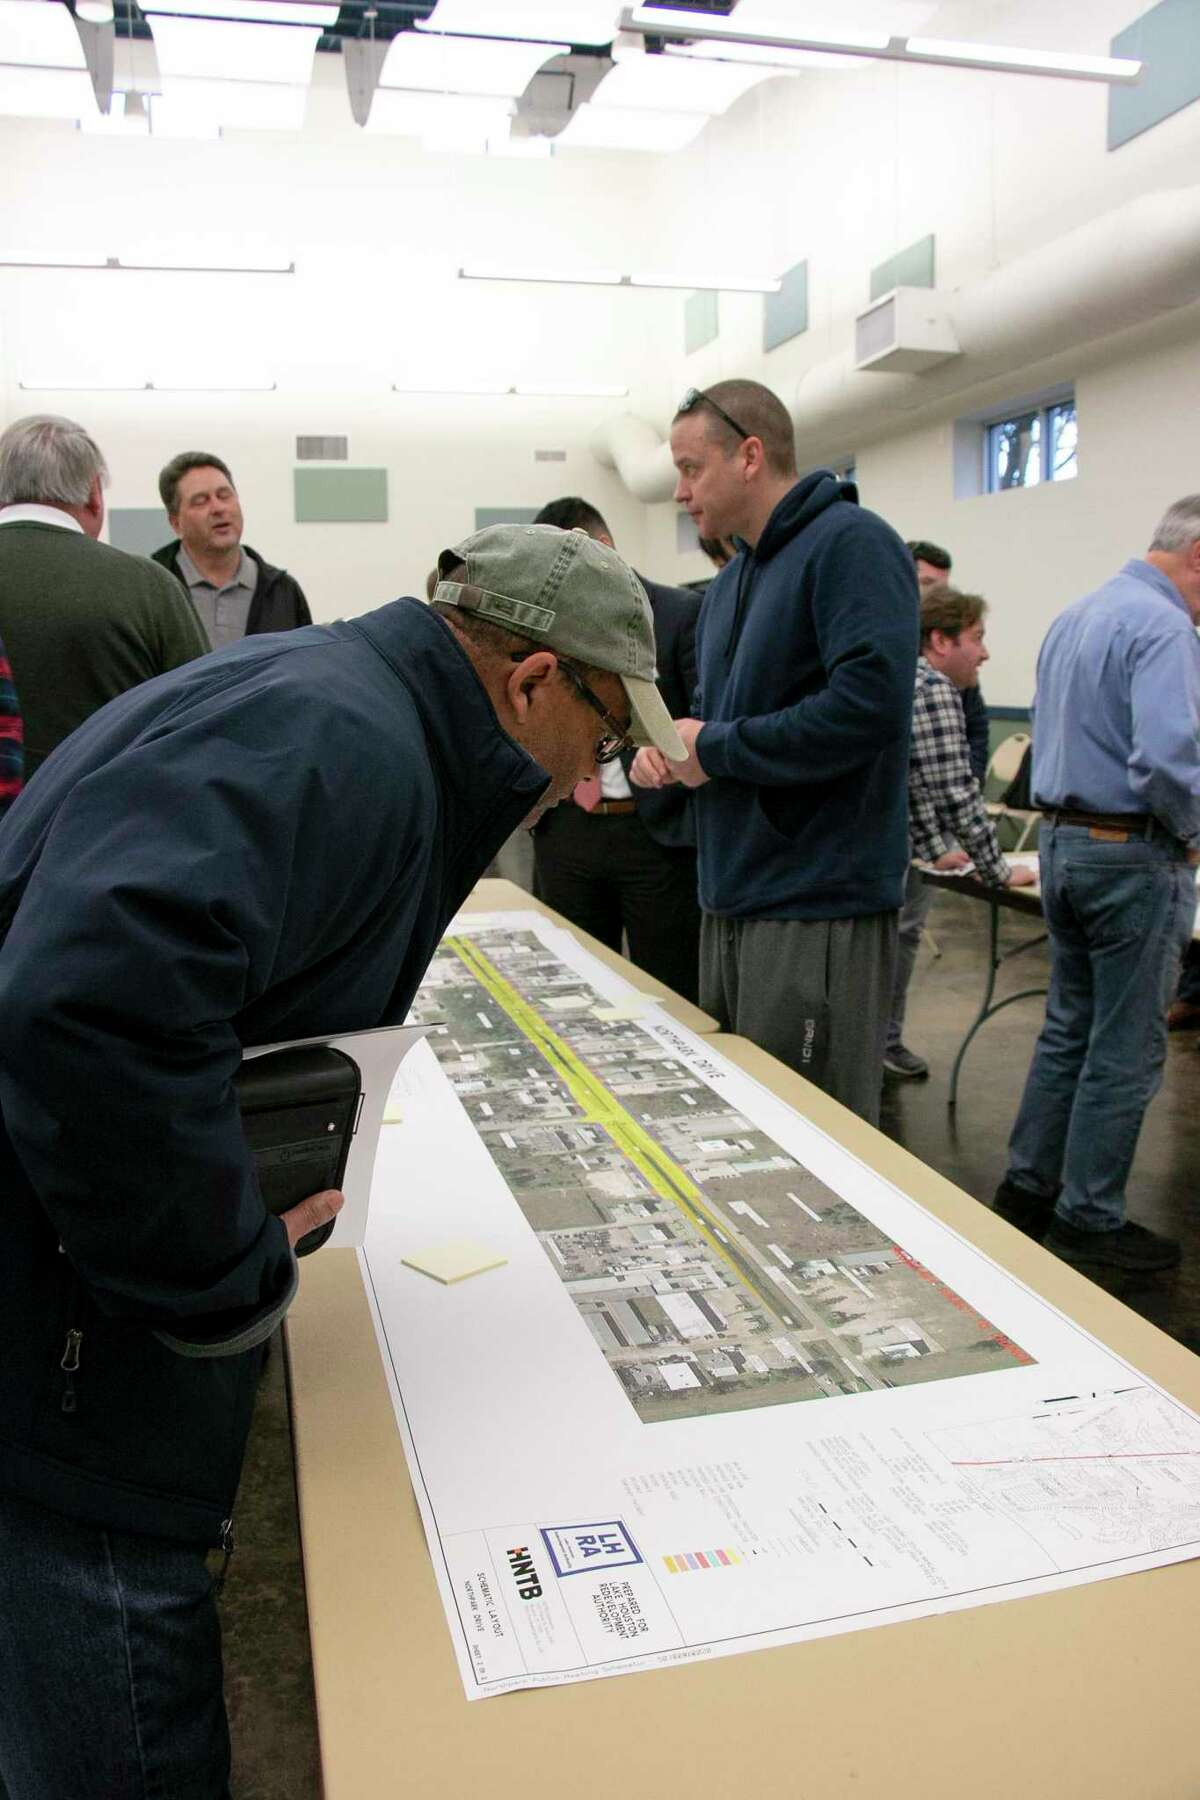 The $88.2 million Northpark Drive Overpass Project is designed to help improve mobility throughout Kingwood. The TIRZ open house on Feb. 6 presented updated information about the project to the community. Local representativesfrom the areaor members from their offices also attended.